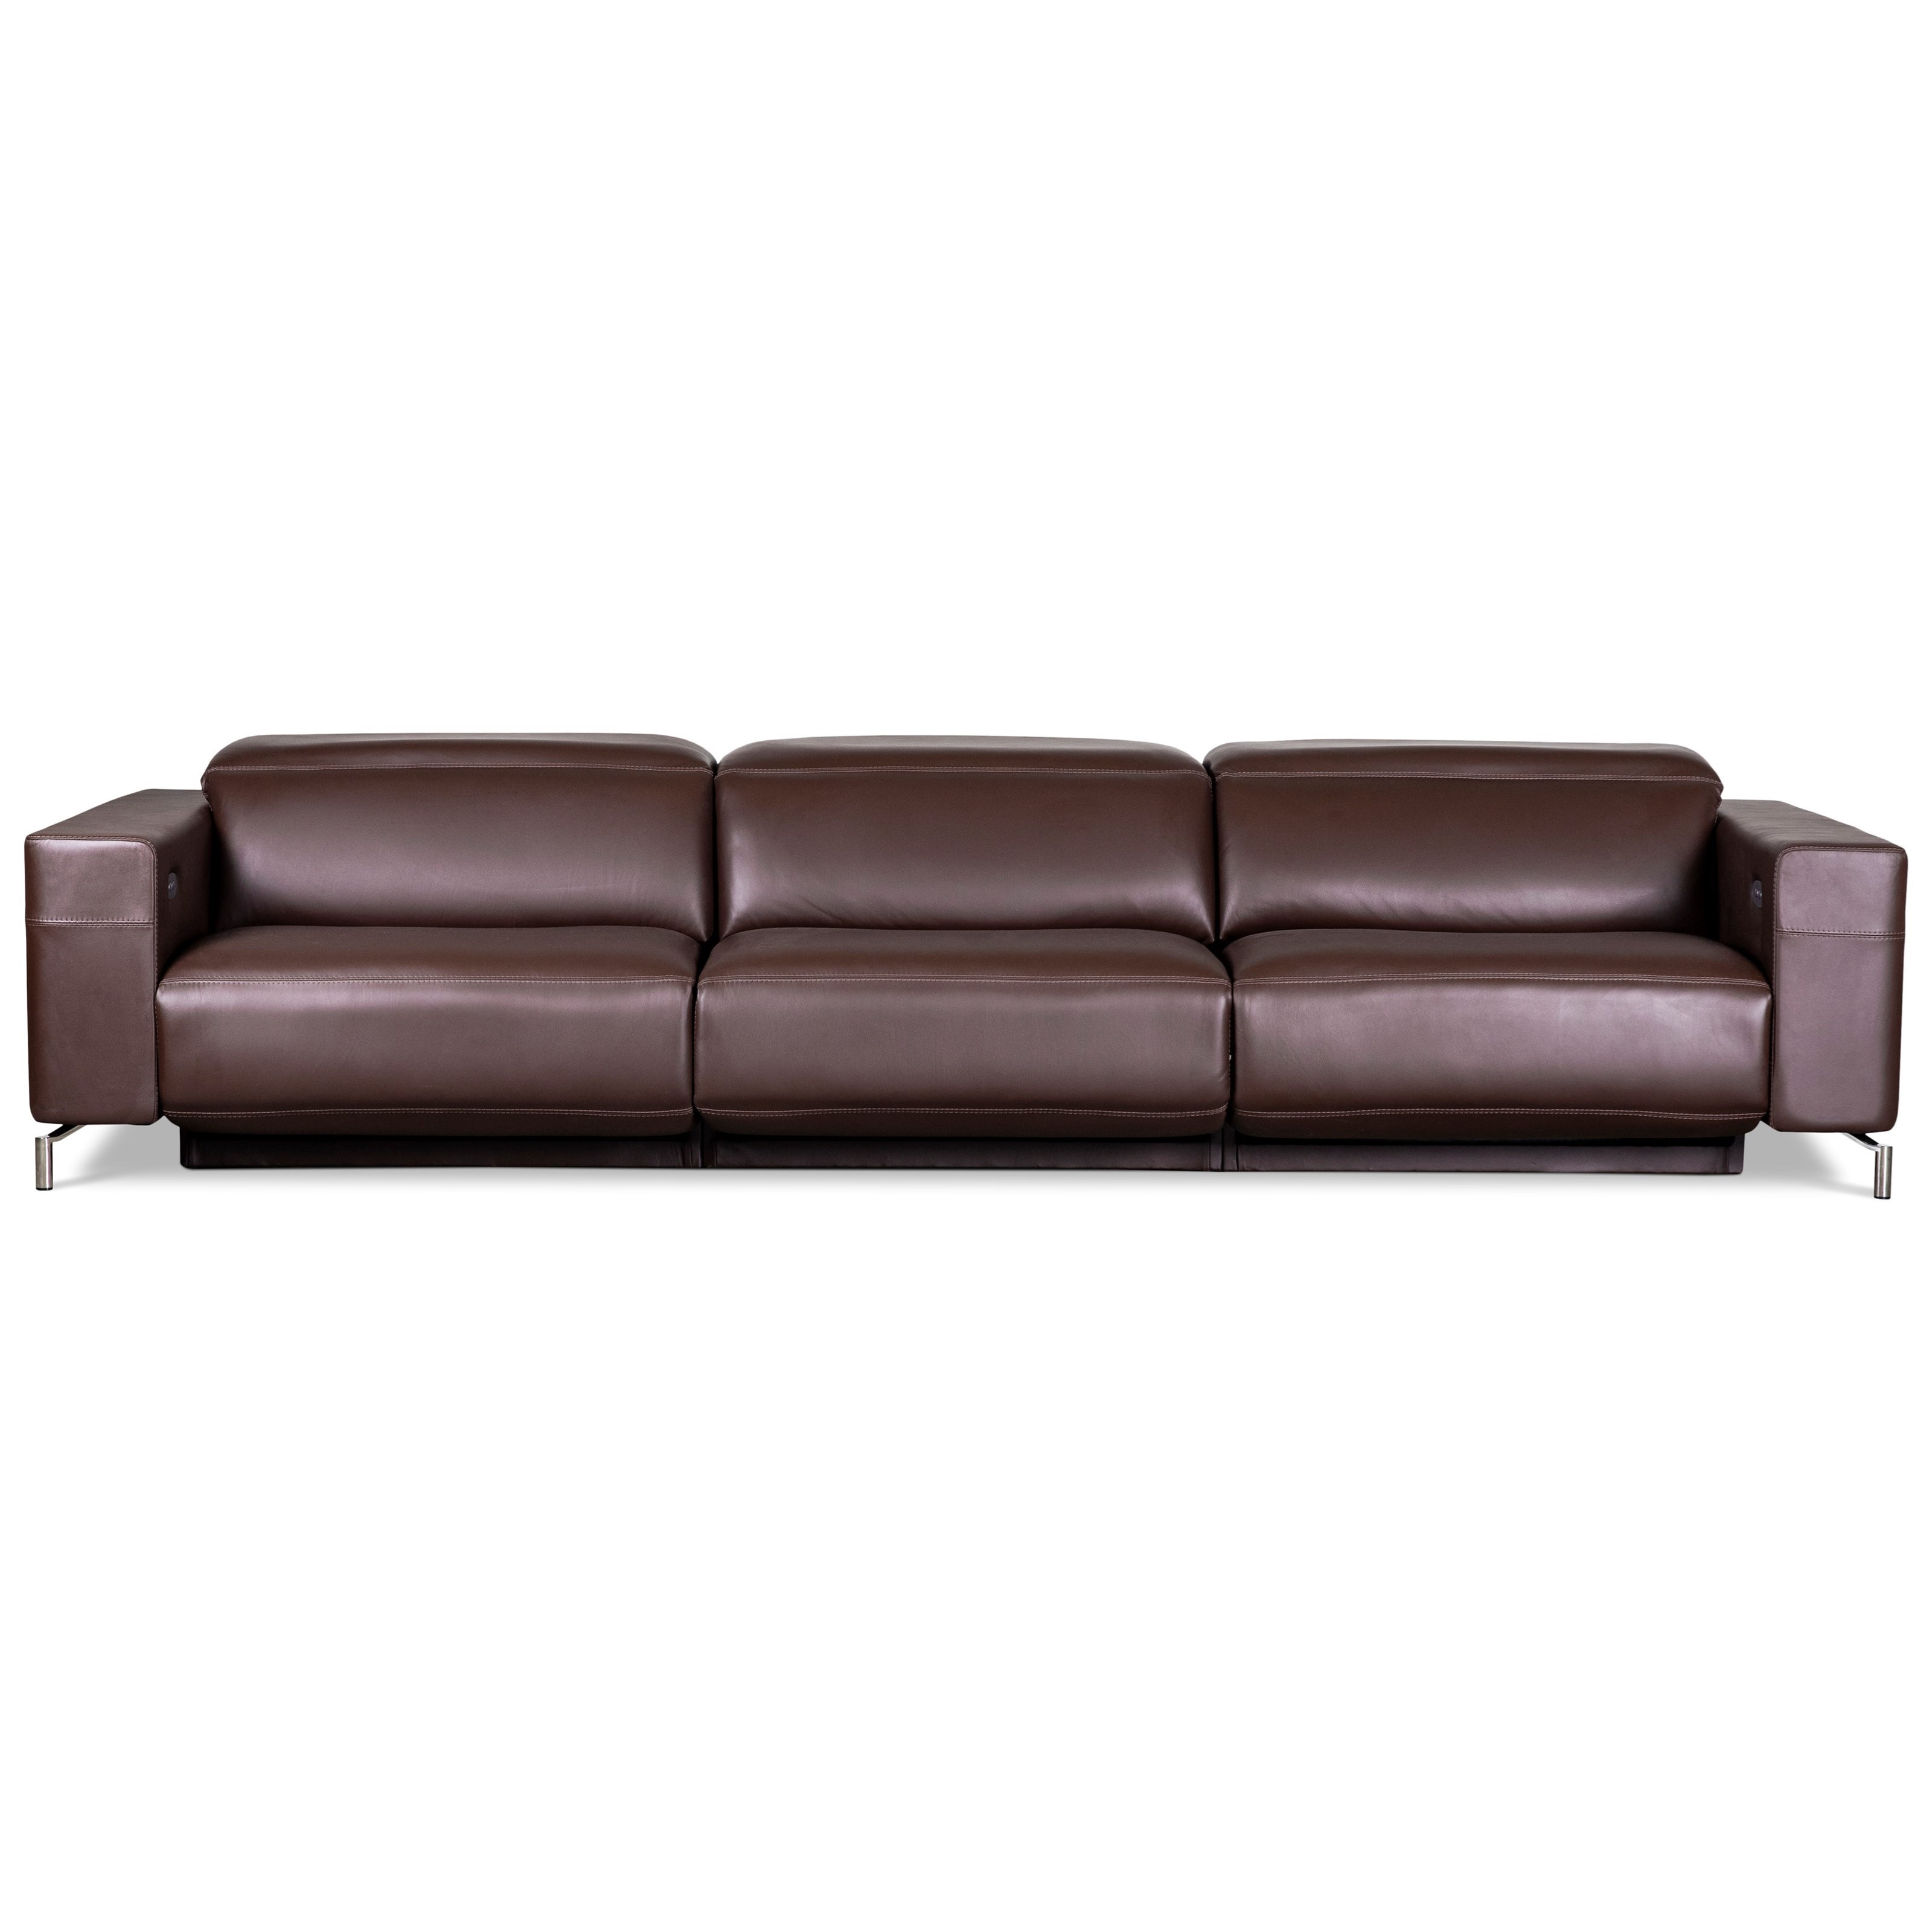 Monza 3-Seat Reclining Sofa by American Leather at Williams & Kay